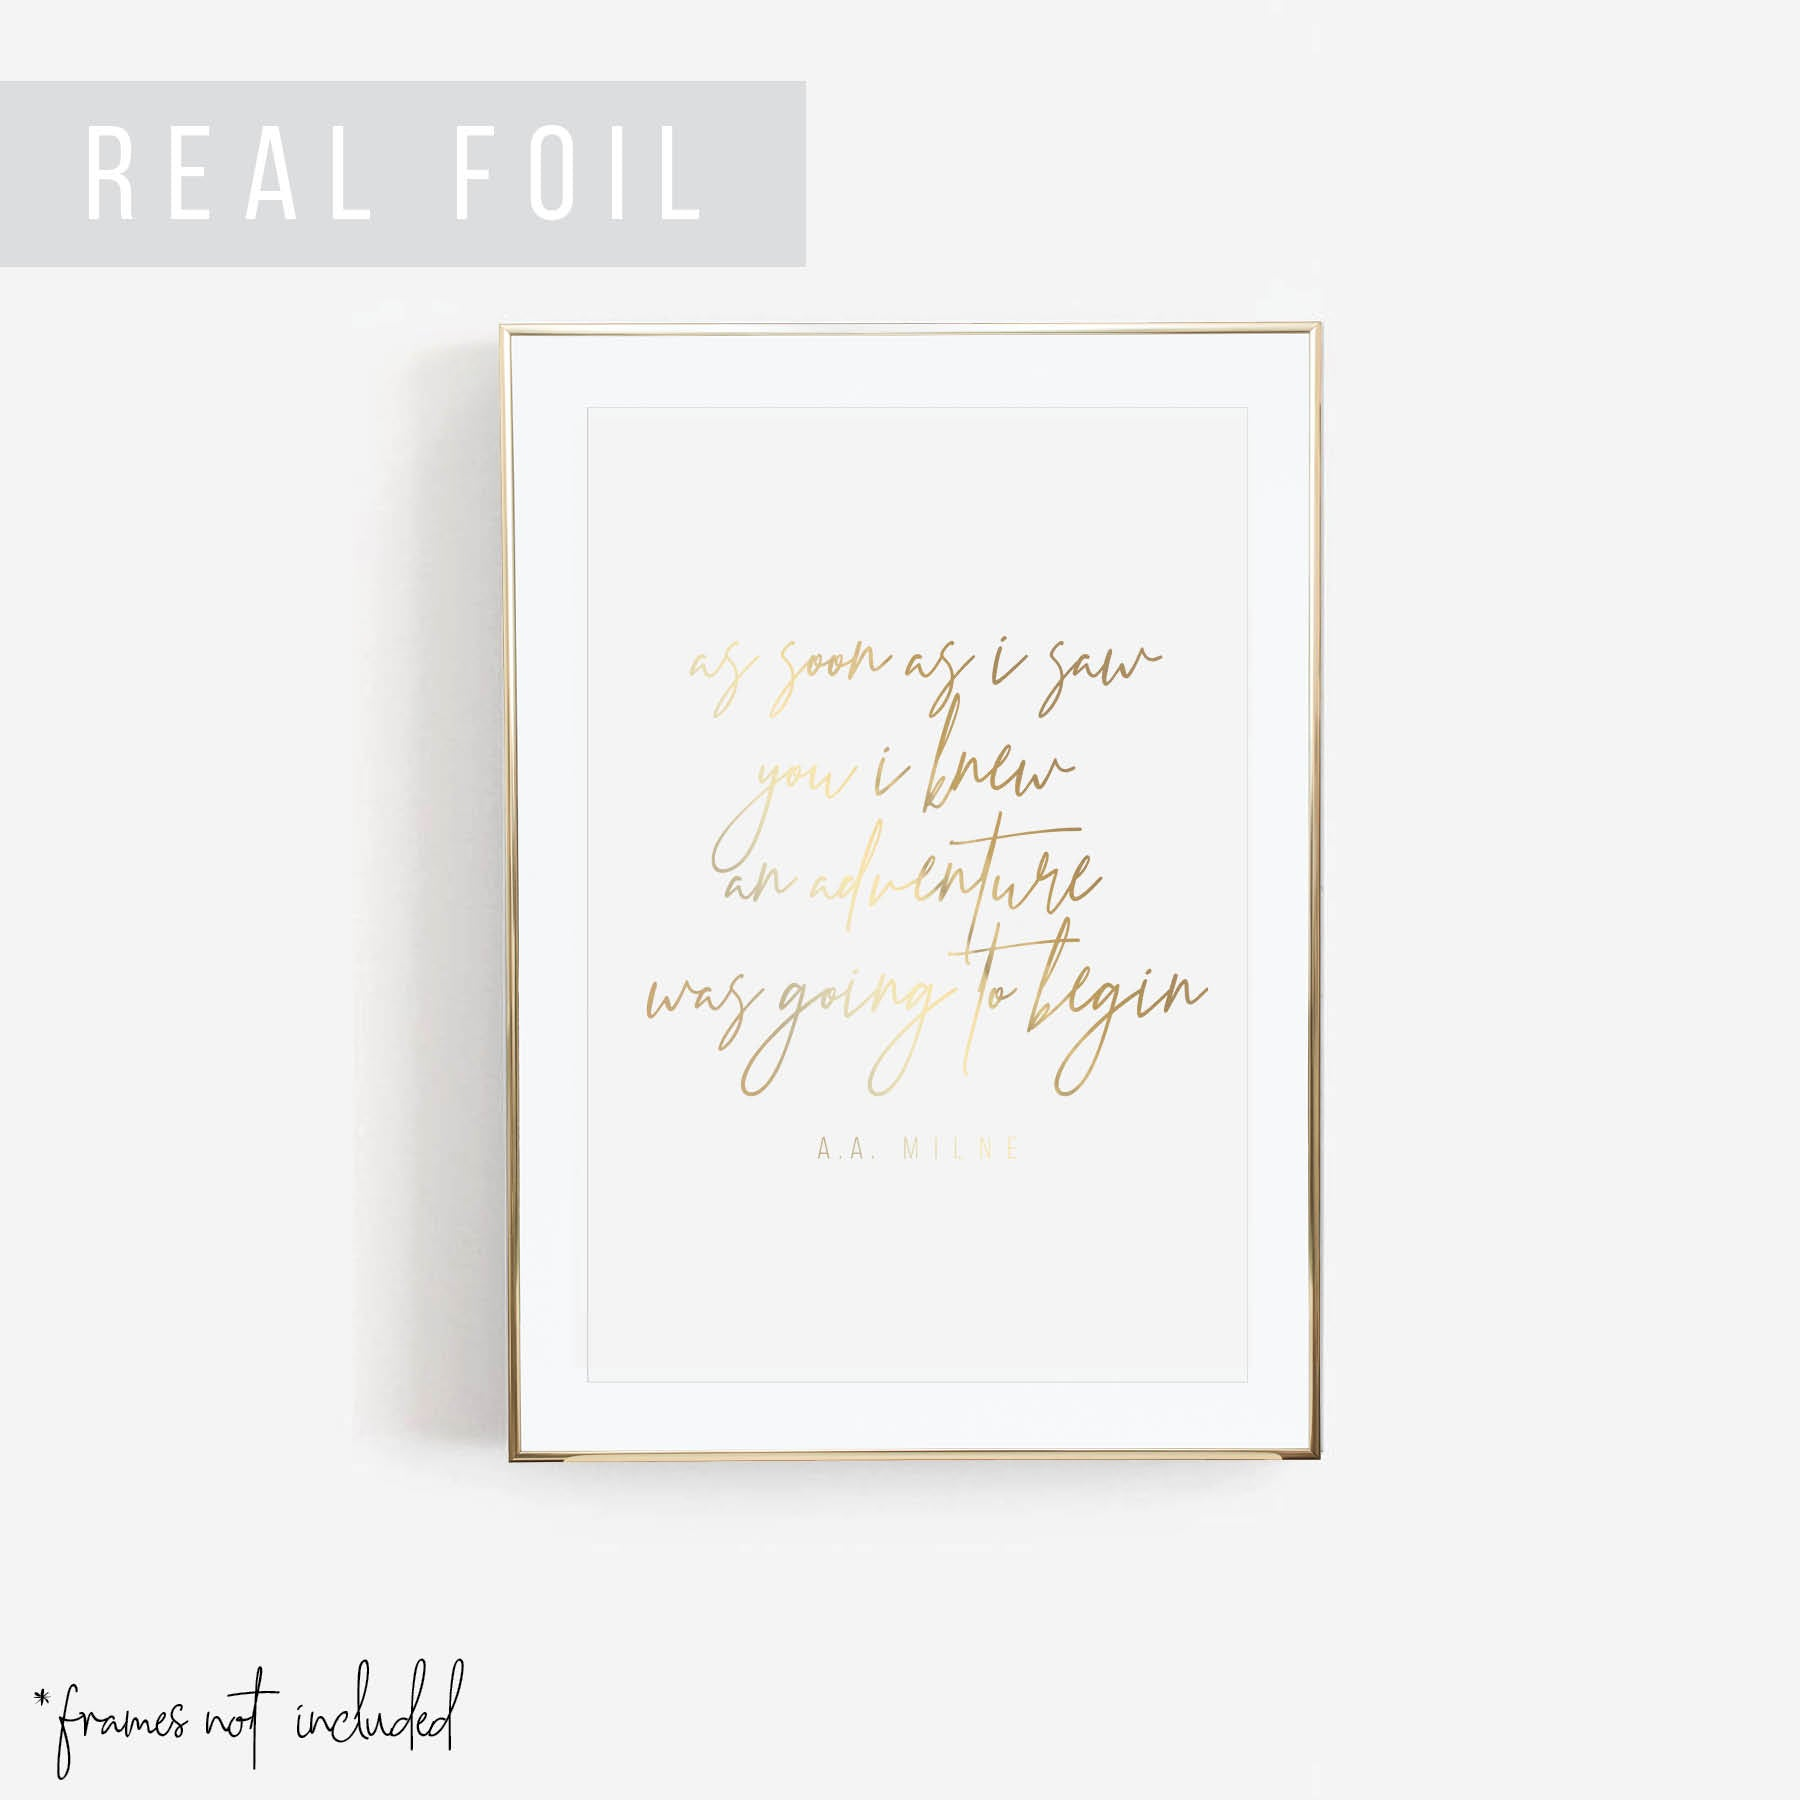 As Soon As I Saw You I Knew An Adventure Was Going to Begin. -A.A. Milne Quote Foiled Art Print - Typologie Paper Co